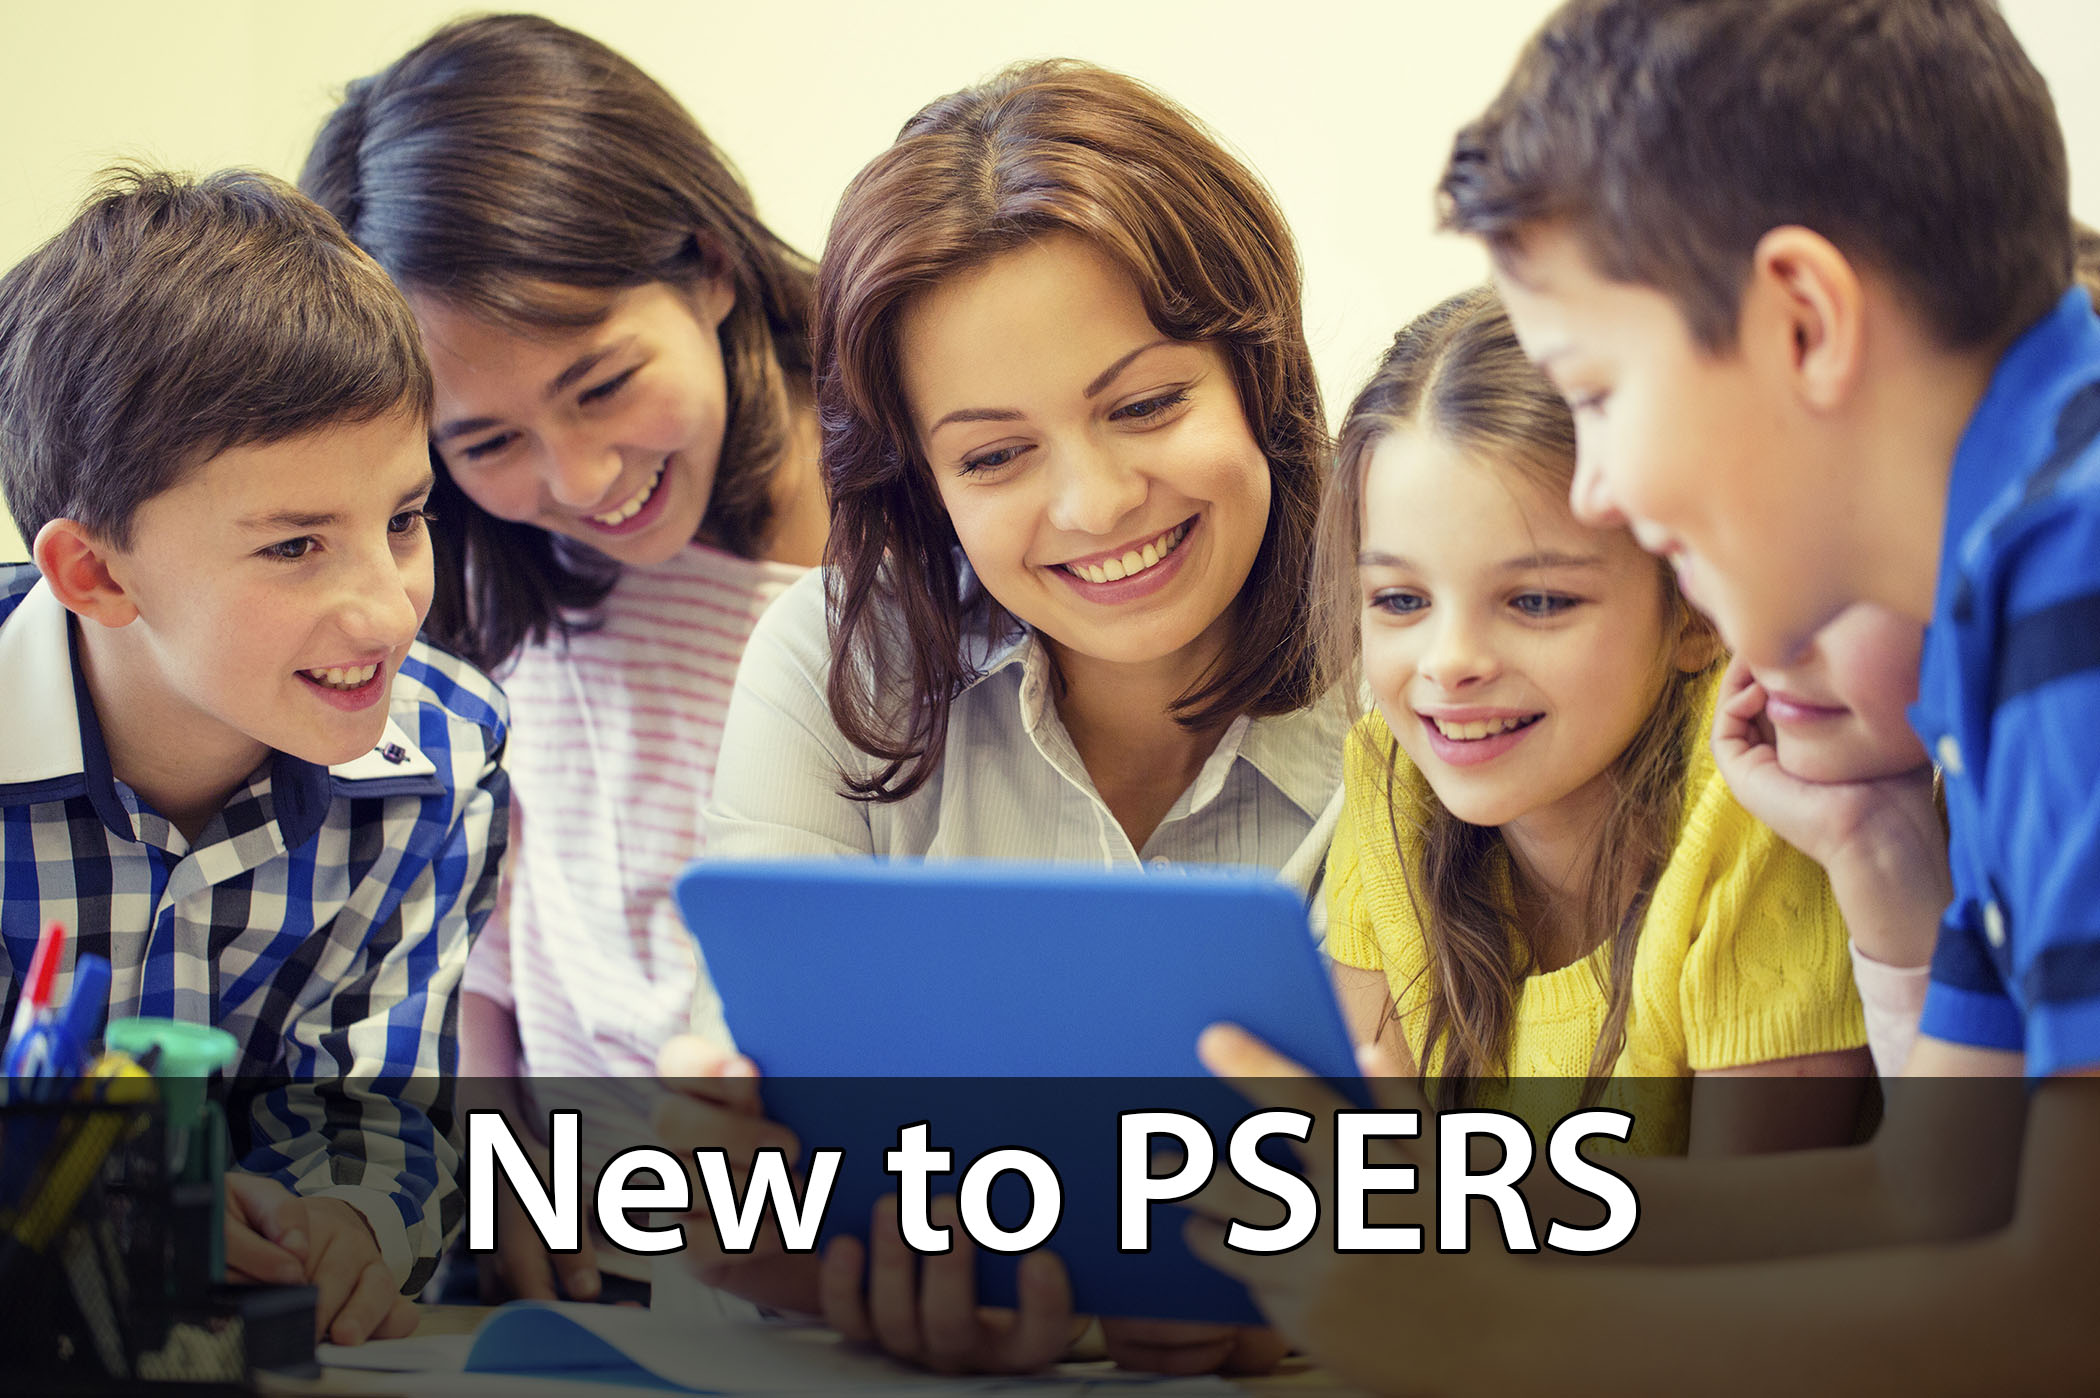 New to PSERS